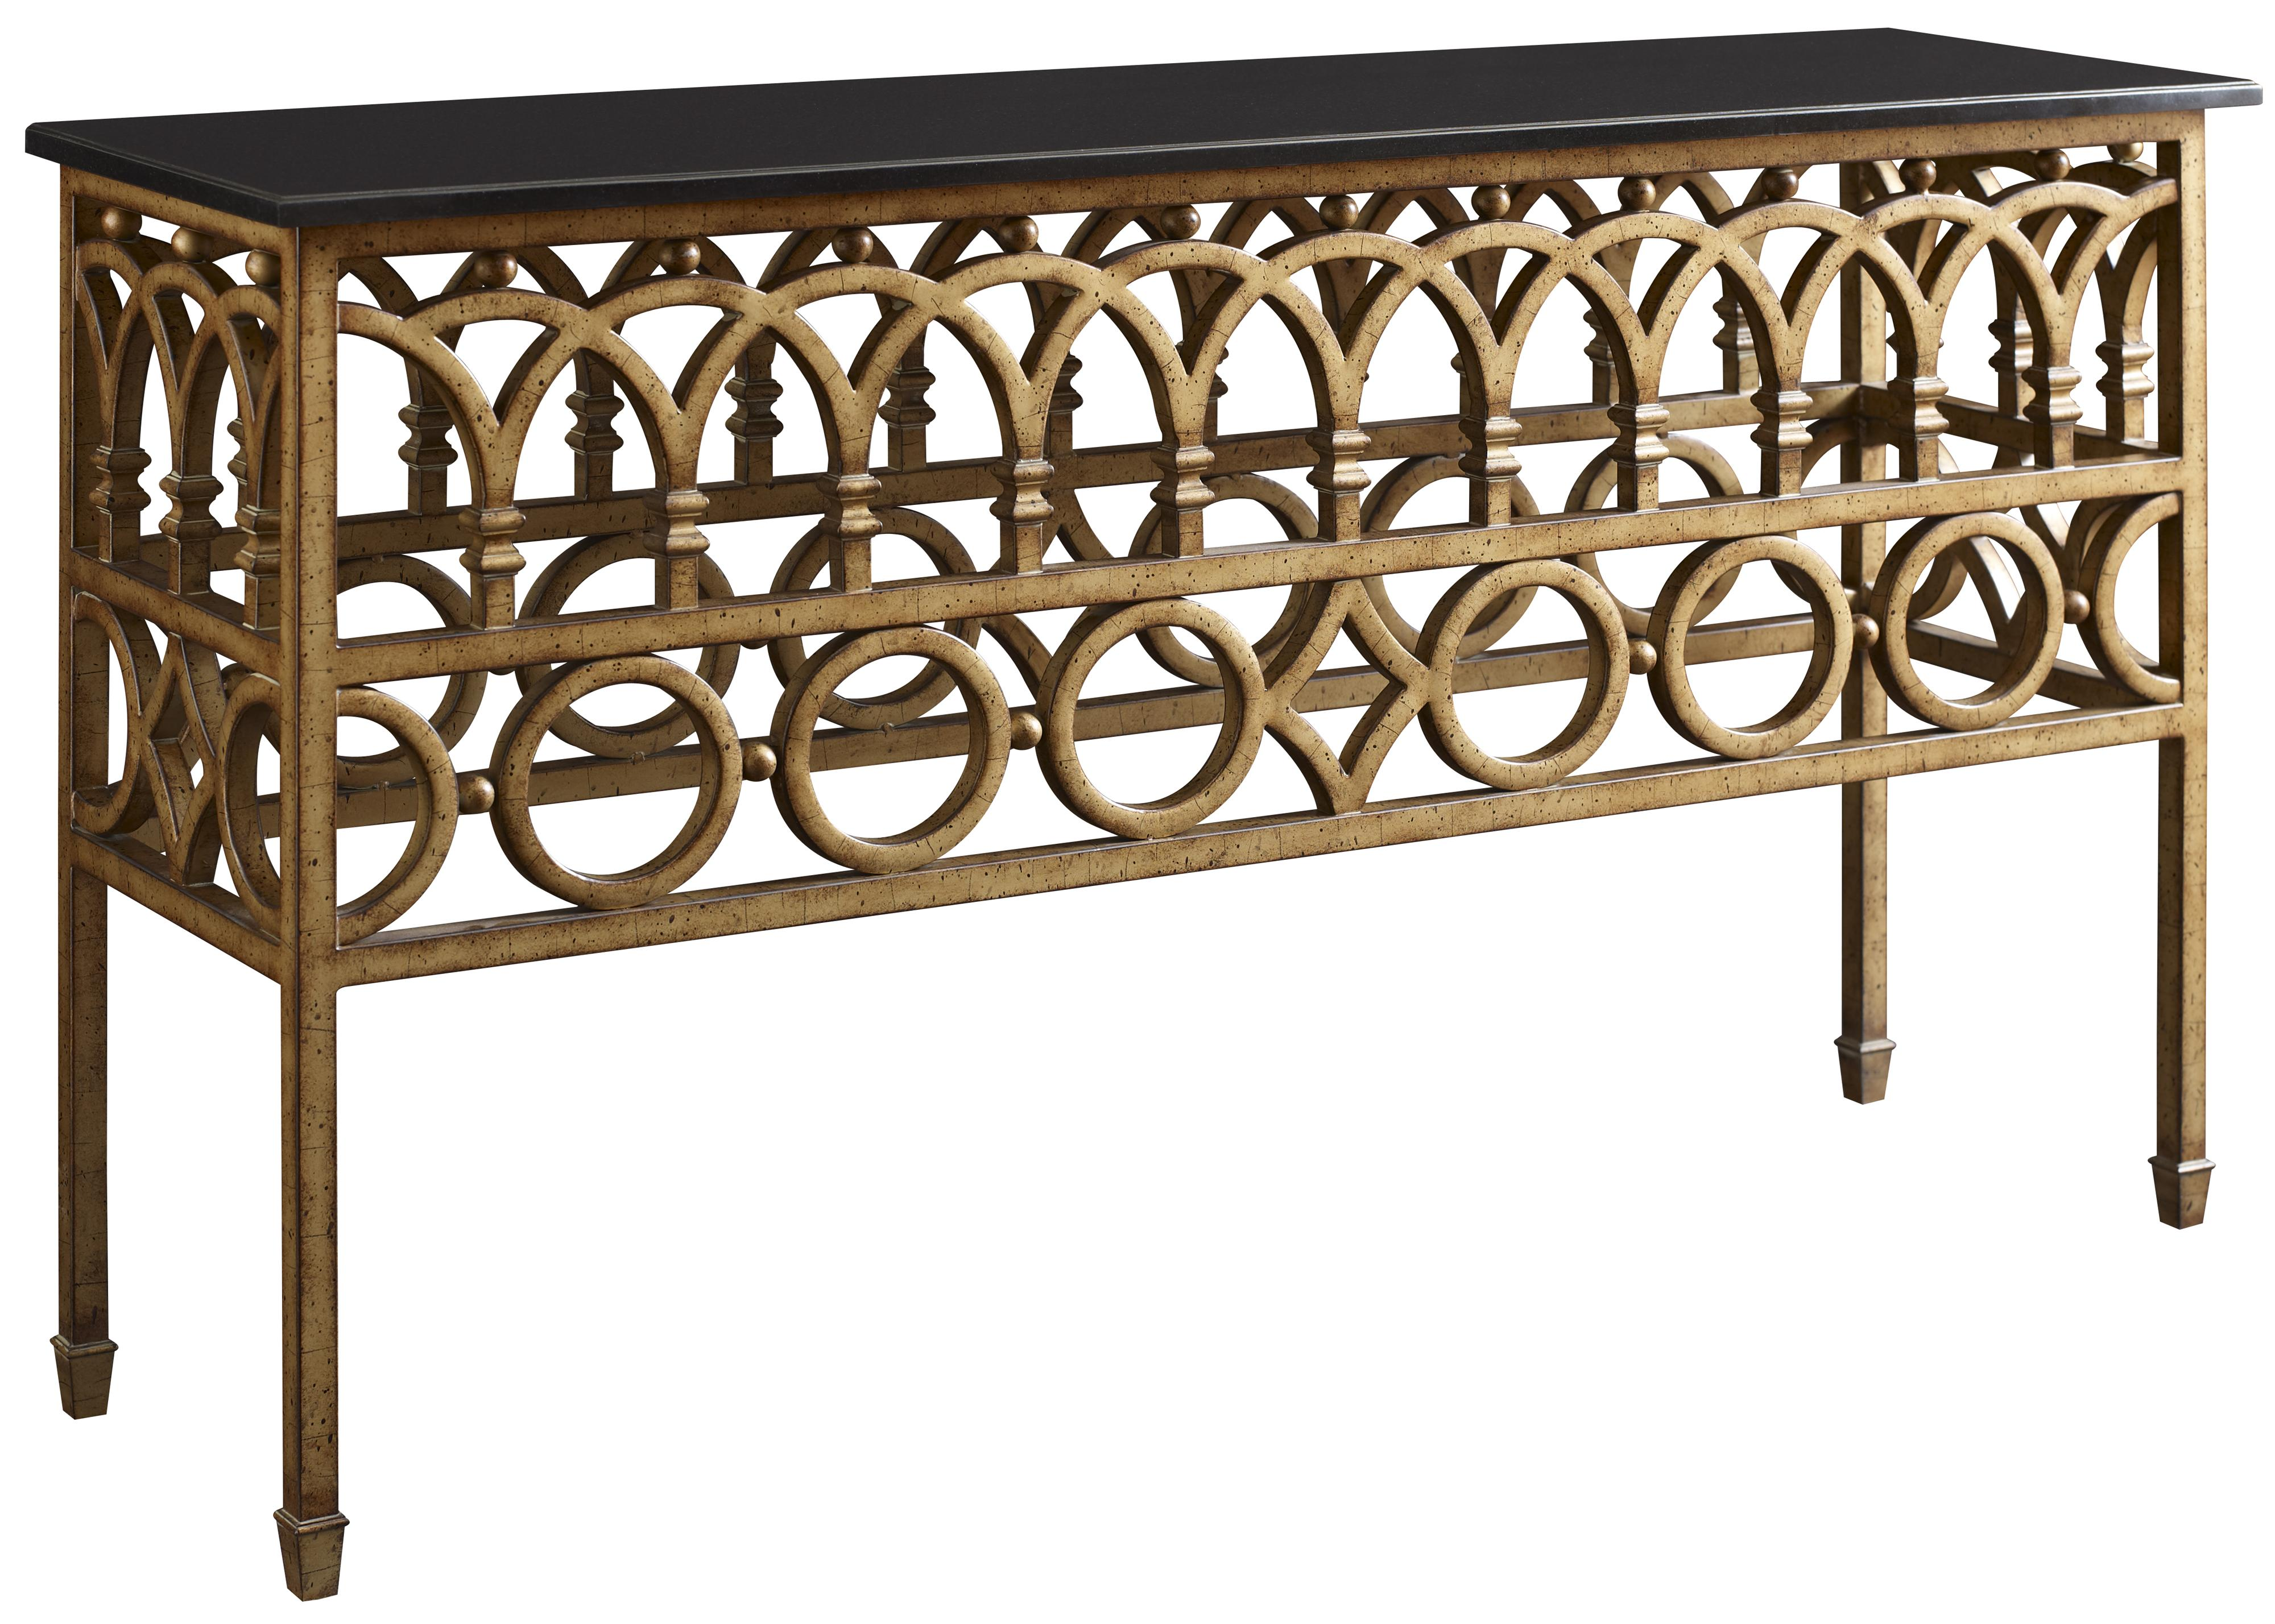 Iron console table w marble top by fine furniture design for Iron furniture